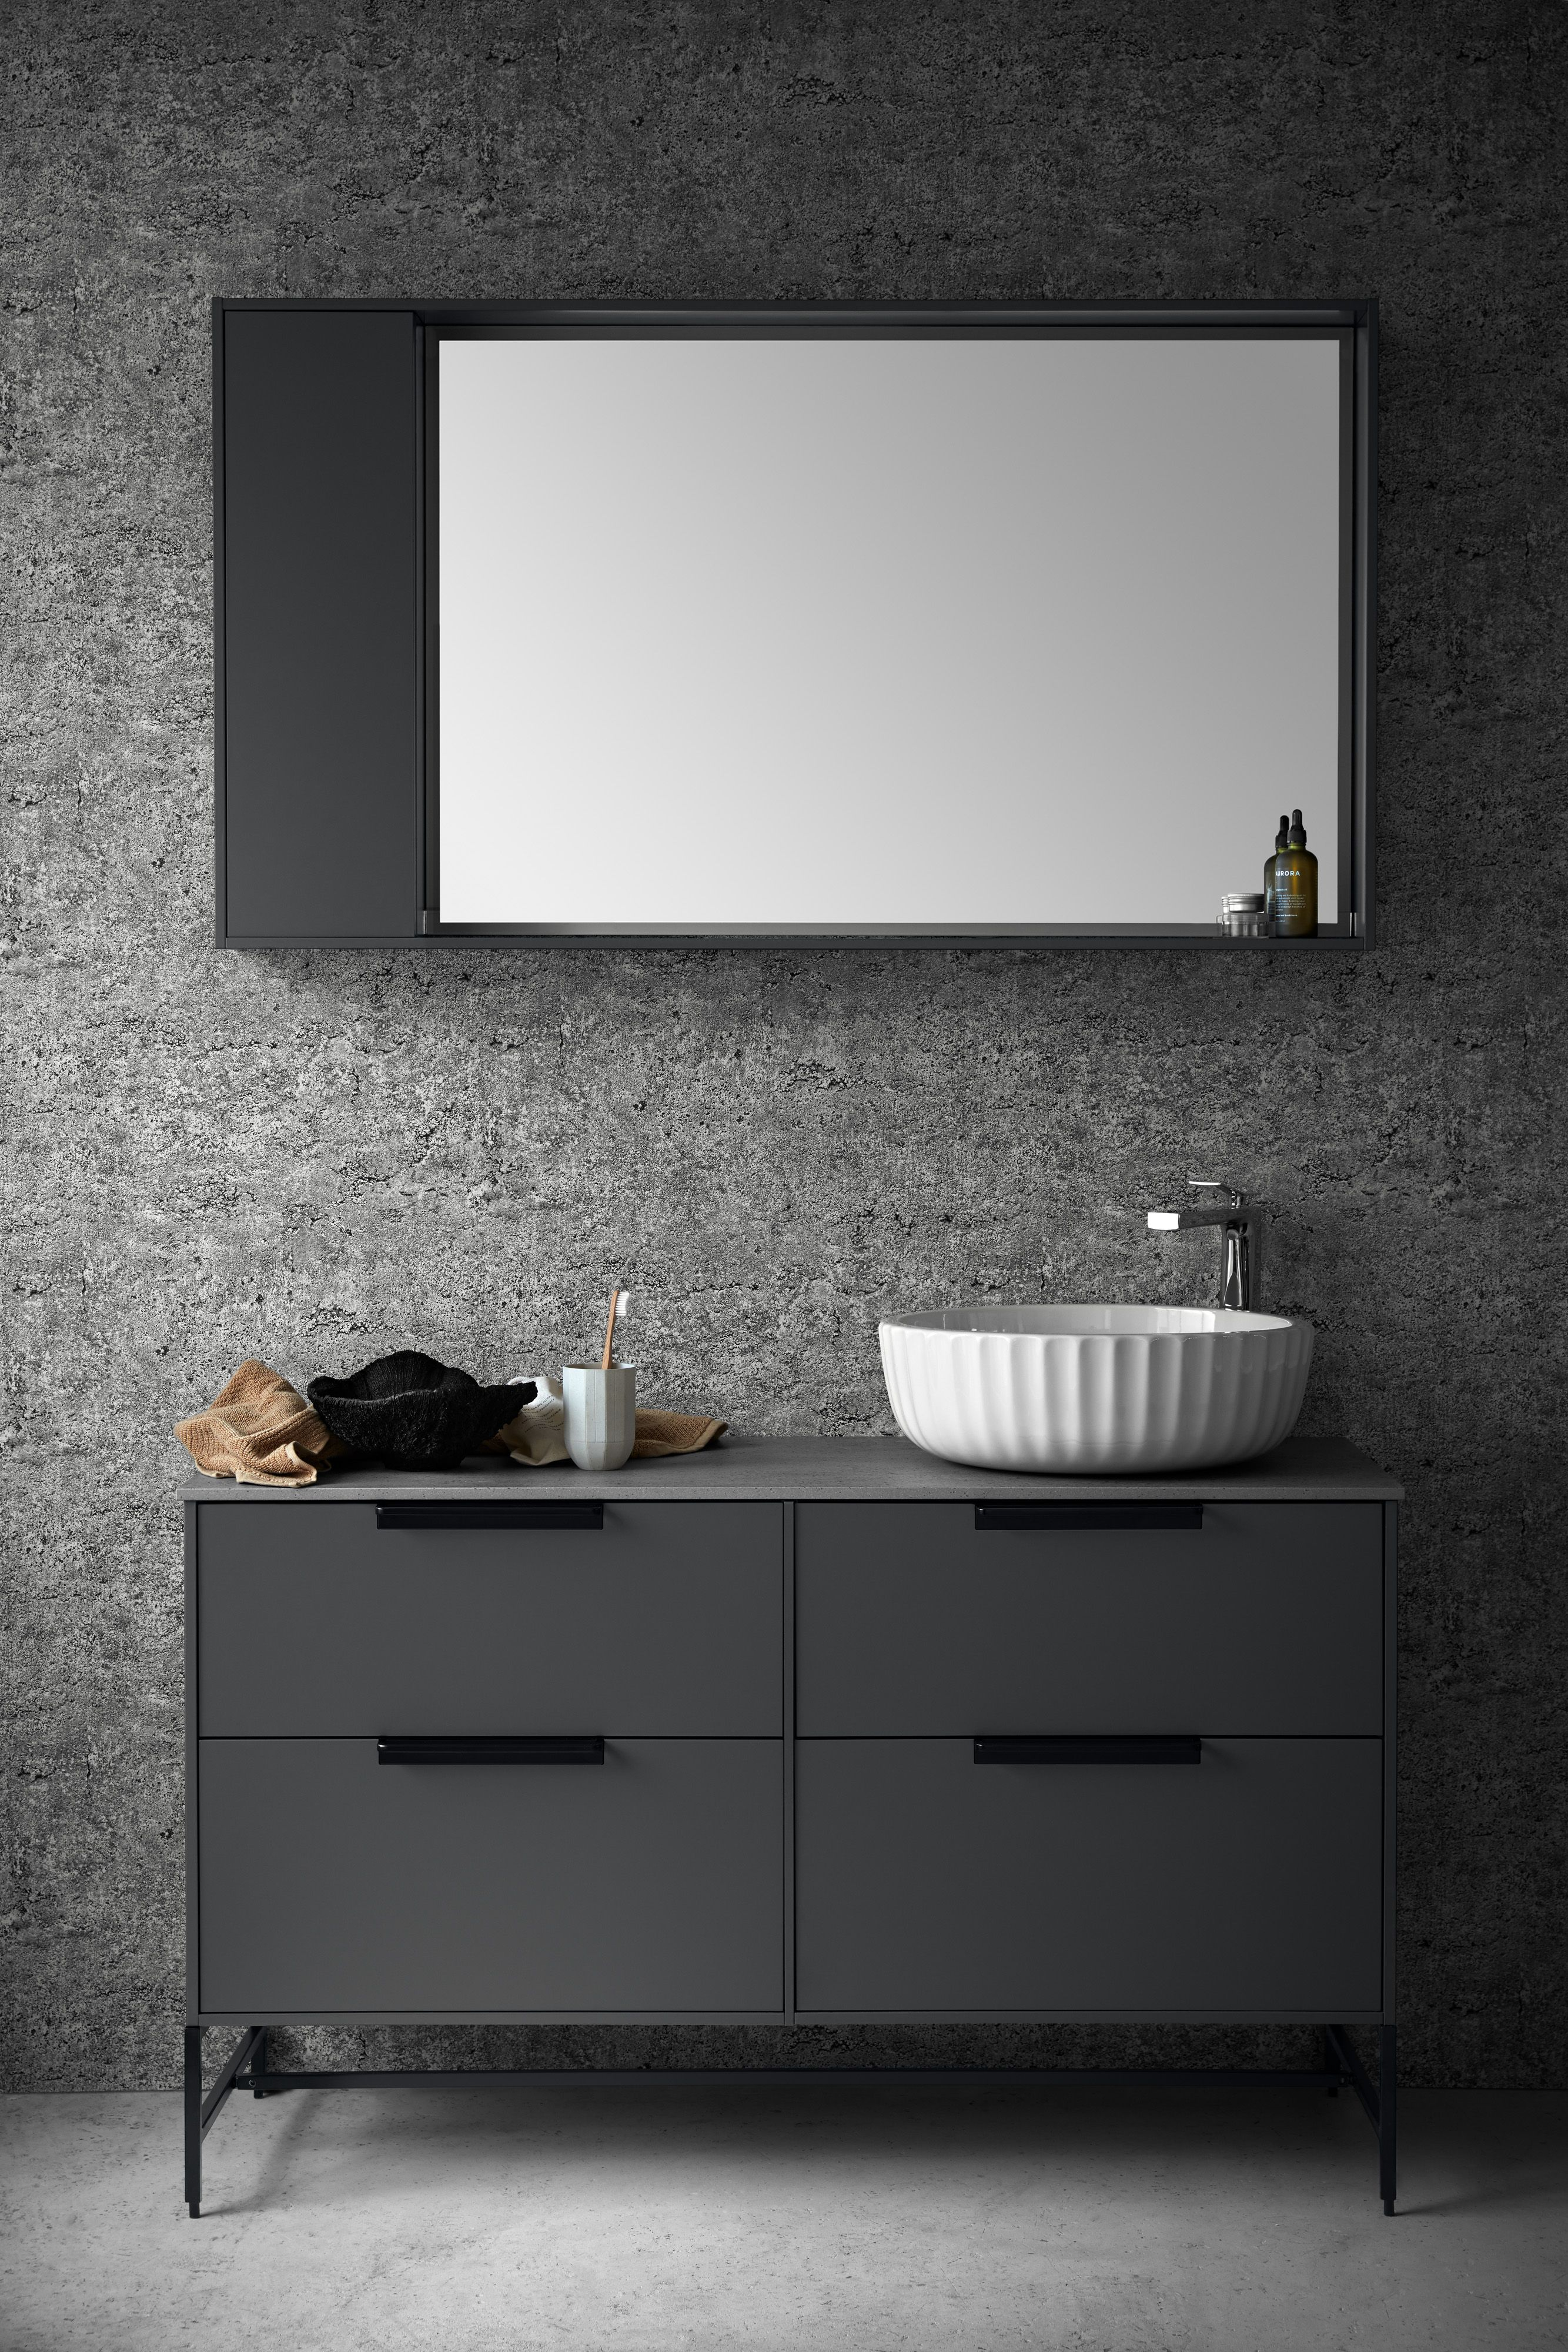 Bathroom Furniture Badrum Mobler Storage Forvaring Smart